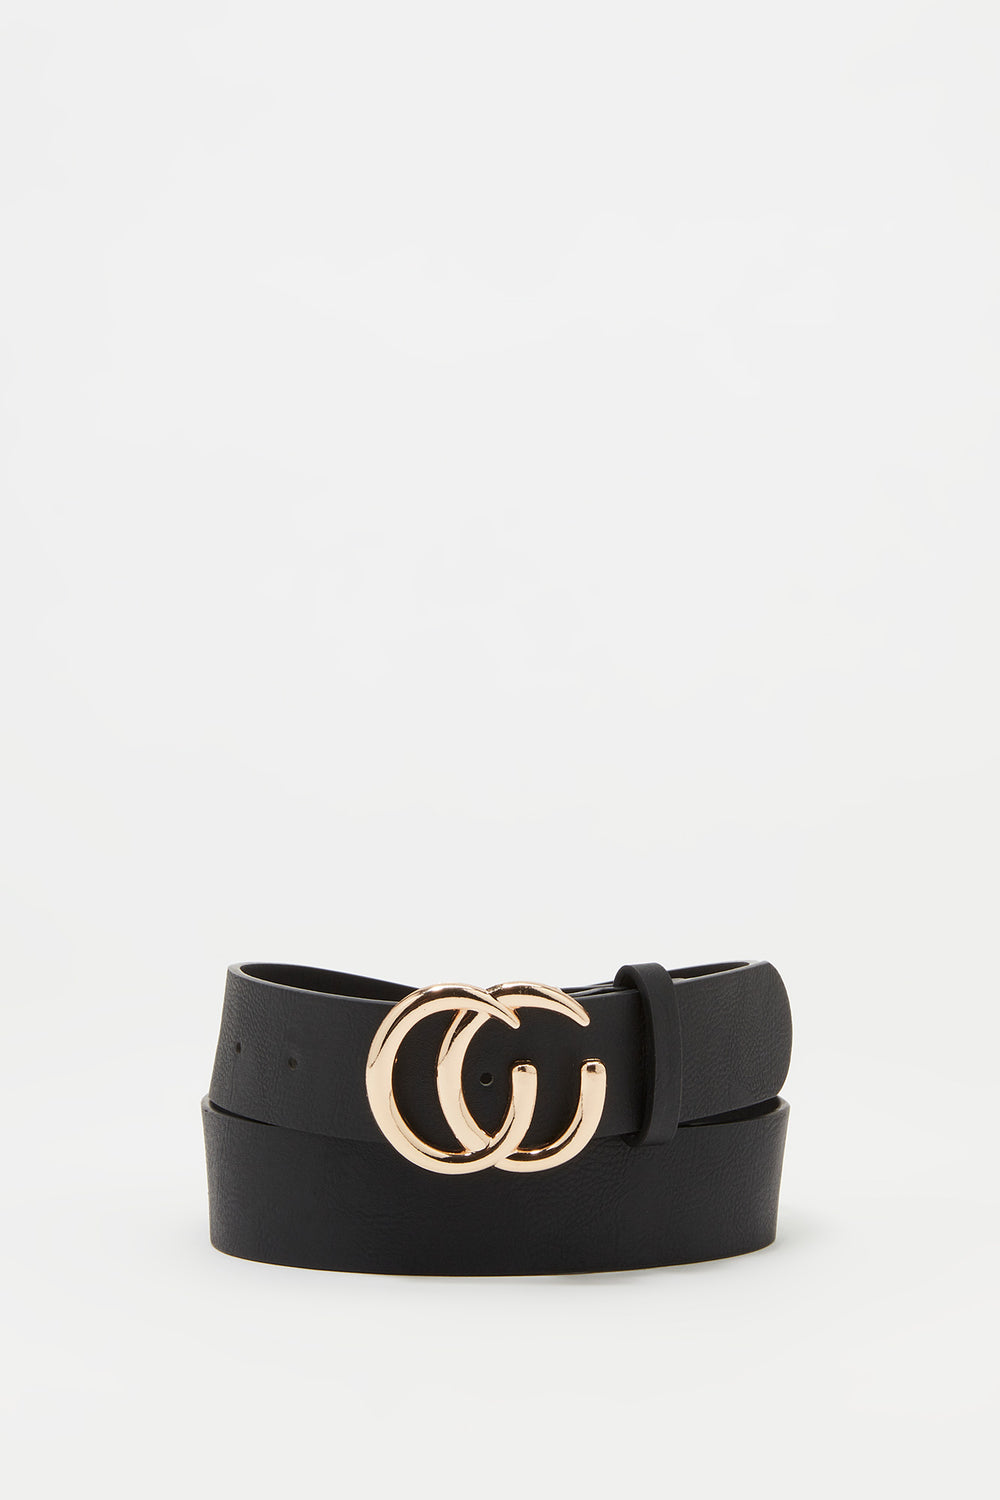 Link CC Buckle Belt Black